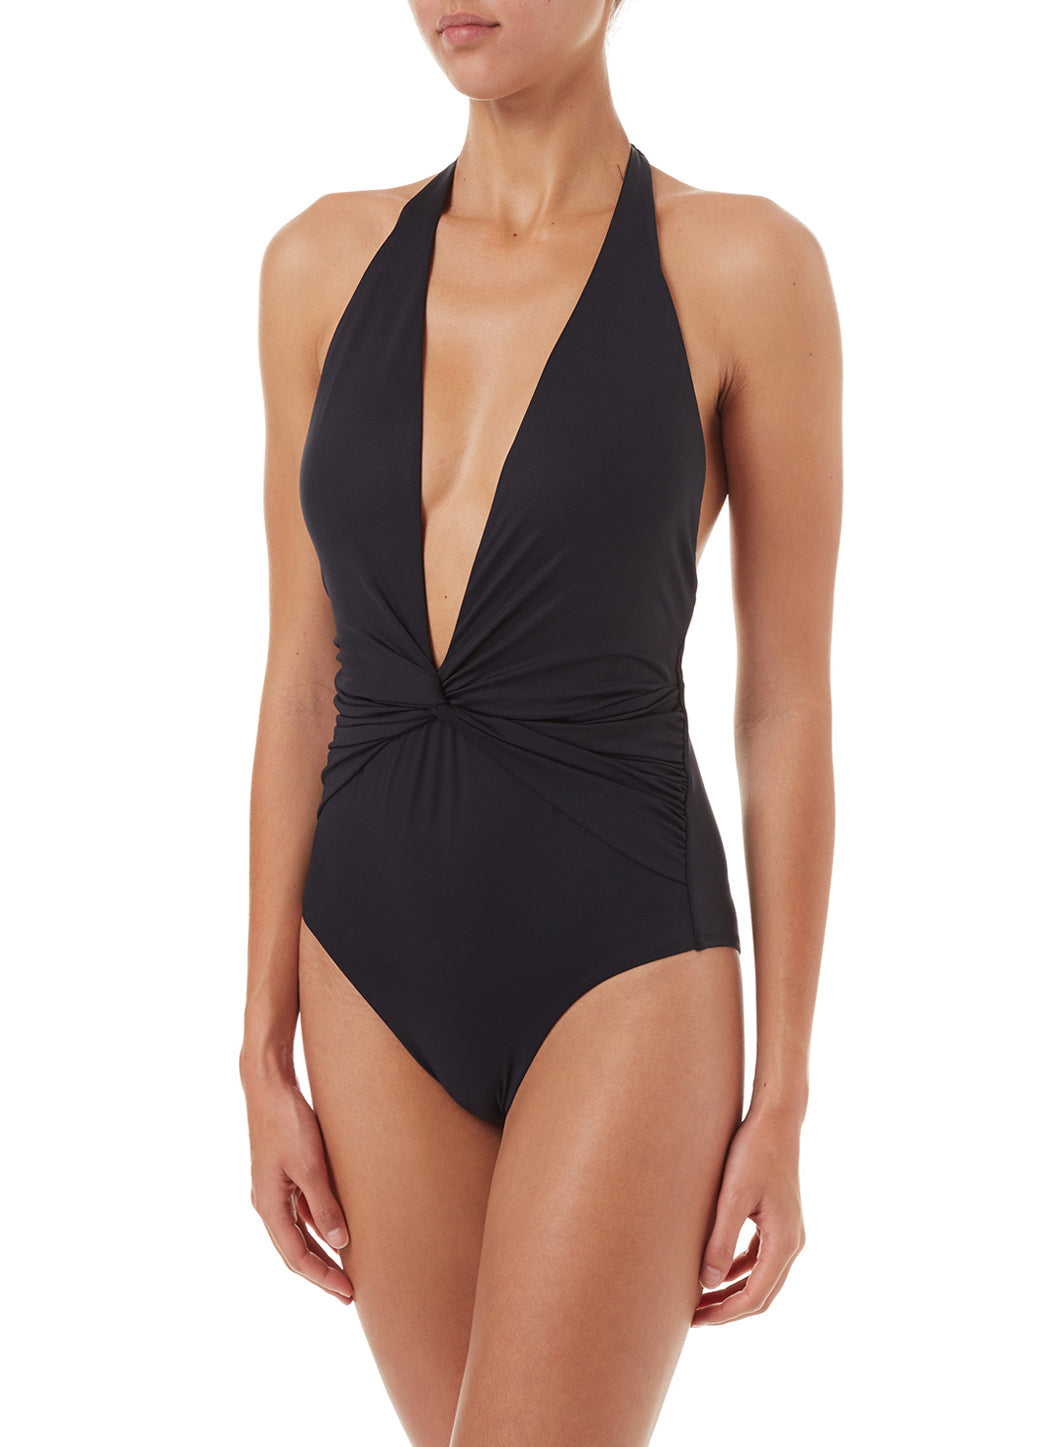 Tahiti Black Halterneck Plunge Ruched Swimsuit